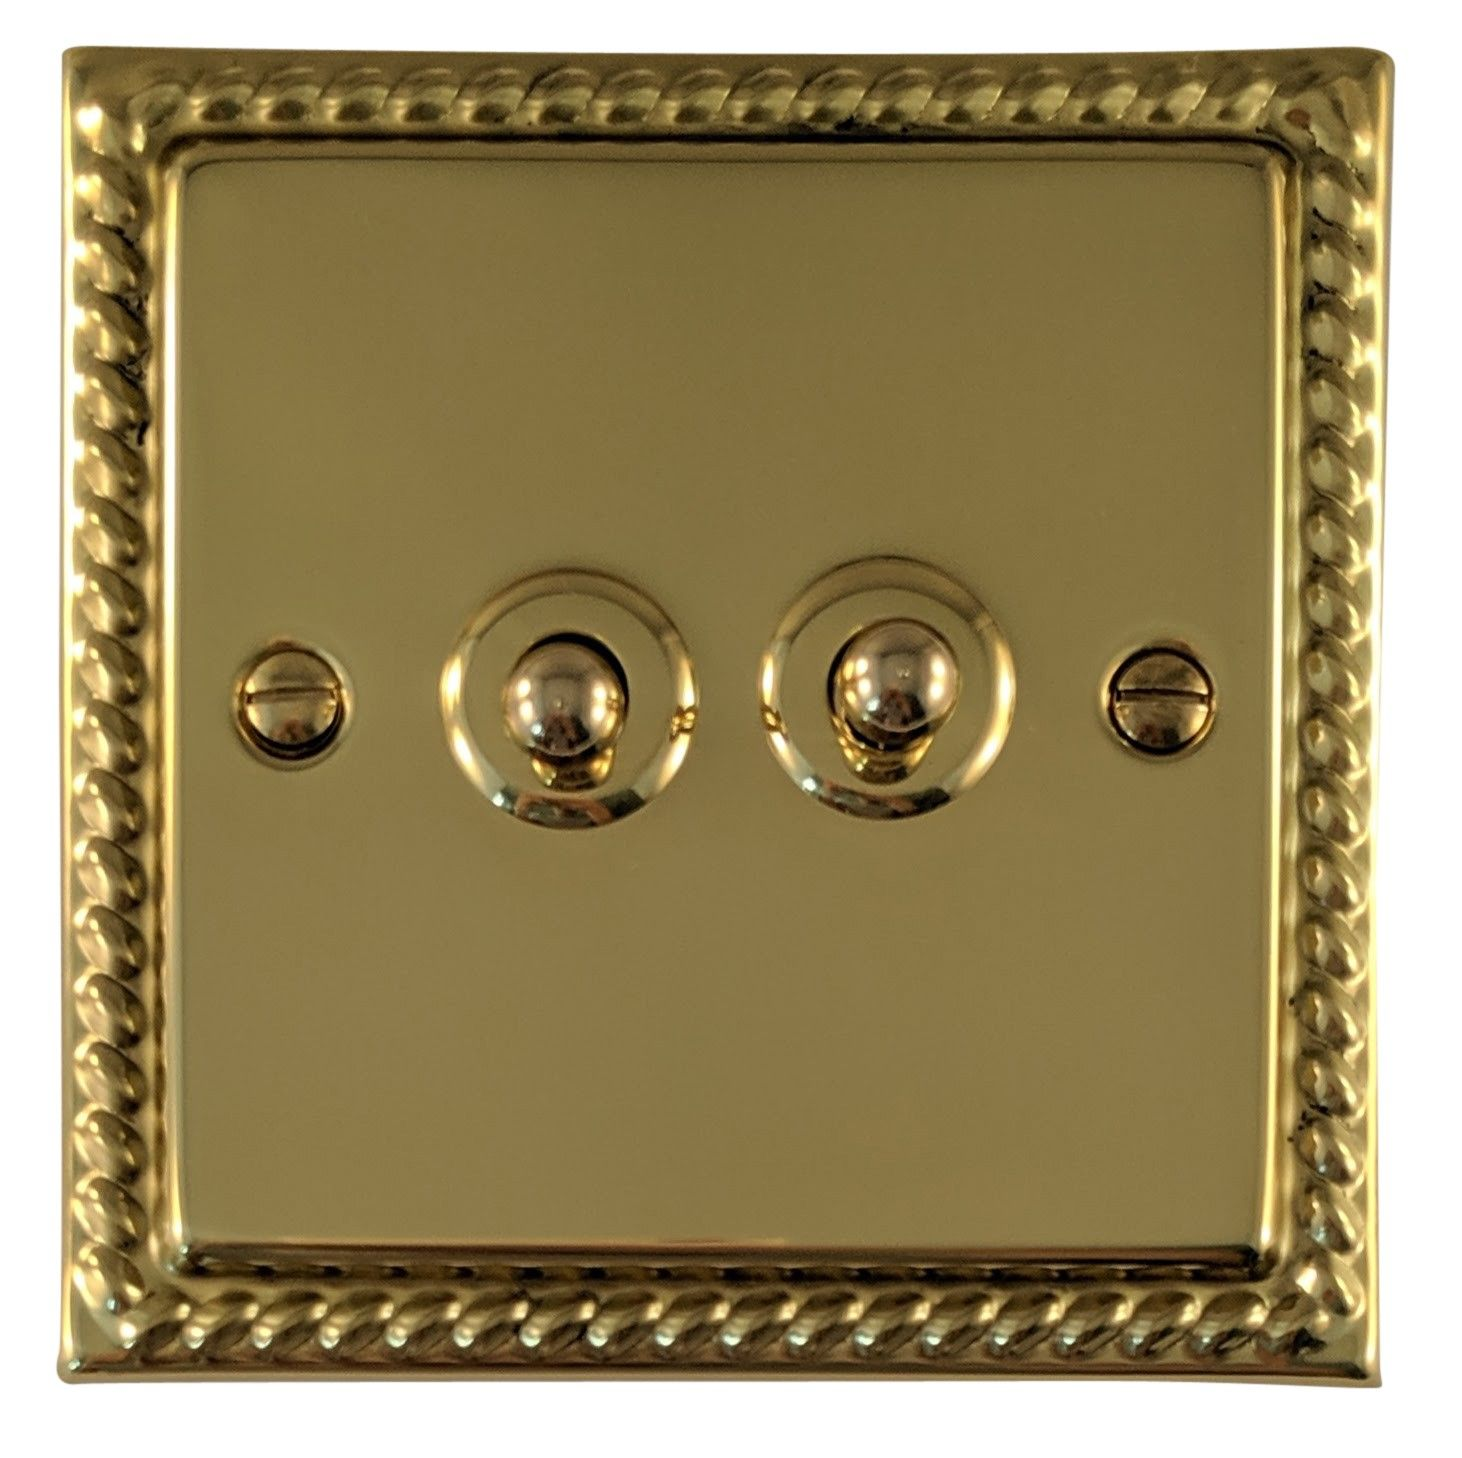 G&H MB282 Monarch Roped Polished Brass 2 Gang 1 or 2 Way Toggle Light Switch